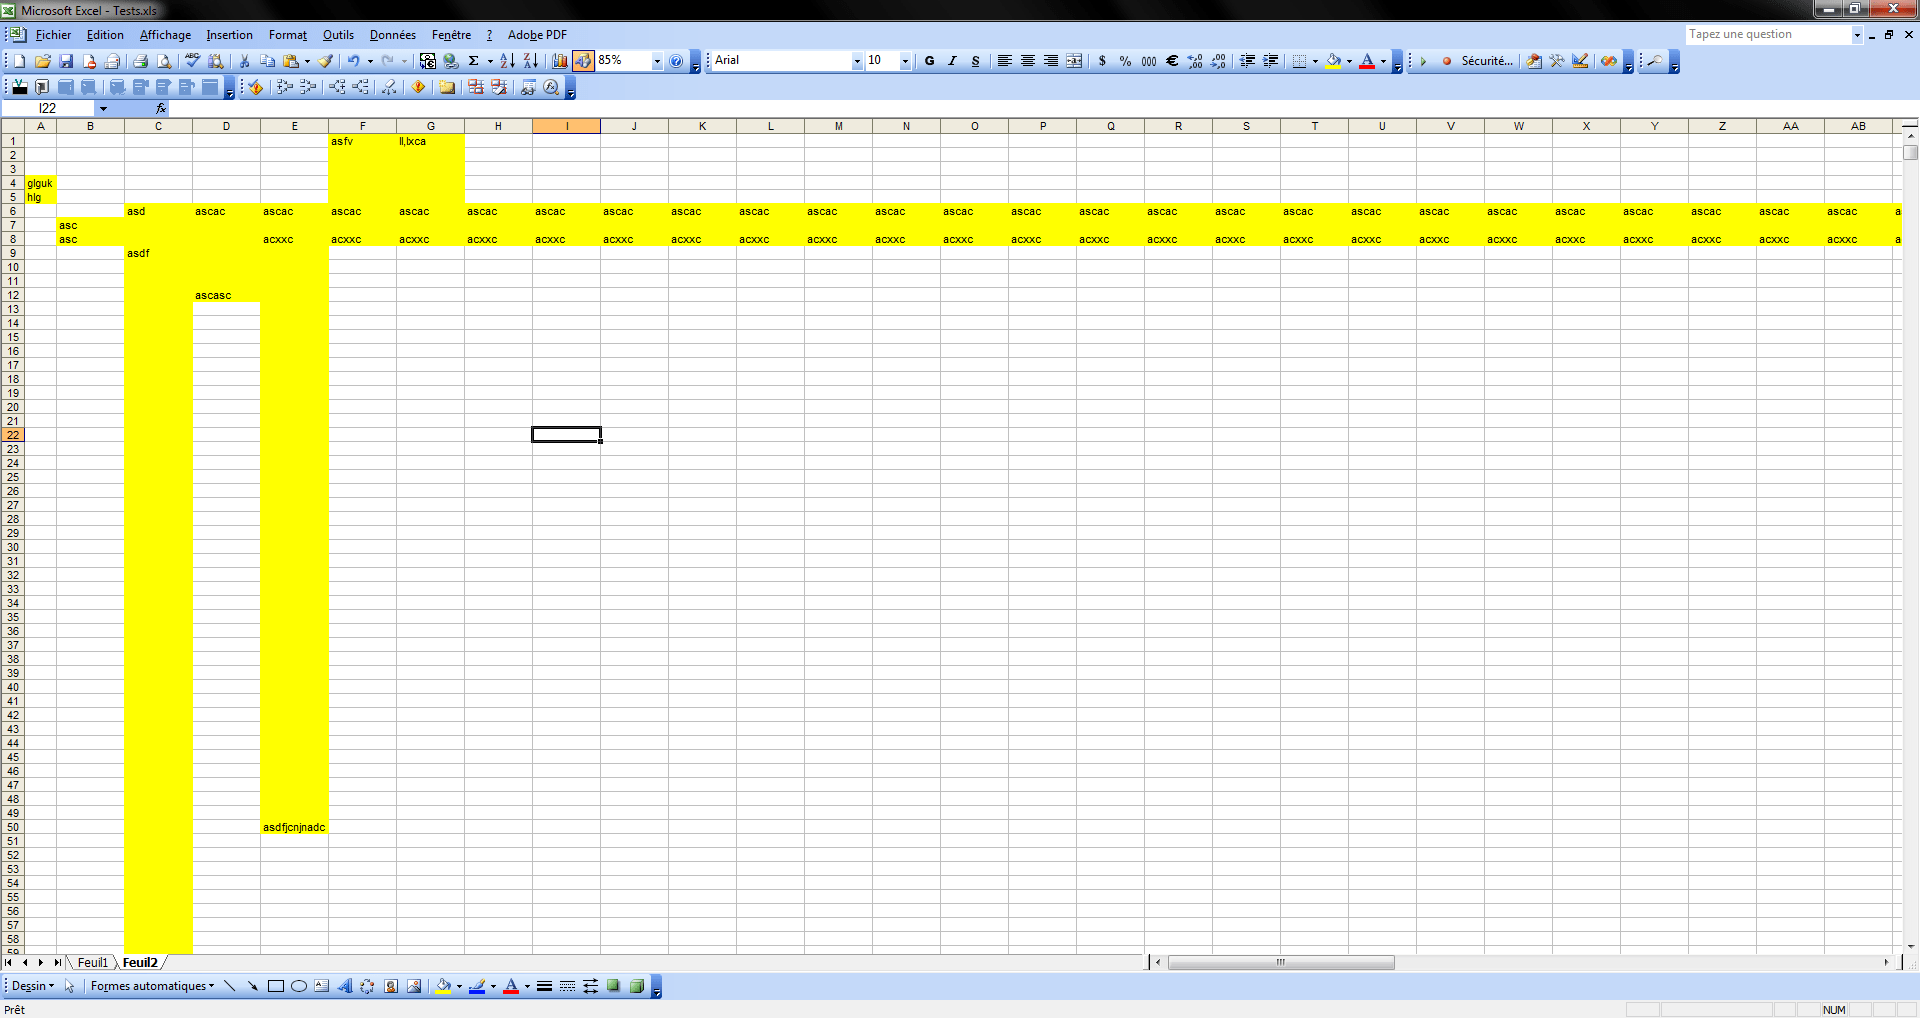 How Do I Clear All Formatting Outside Of Usedrange In Vba